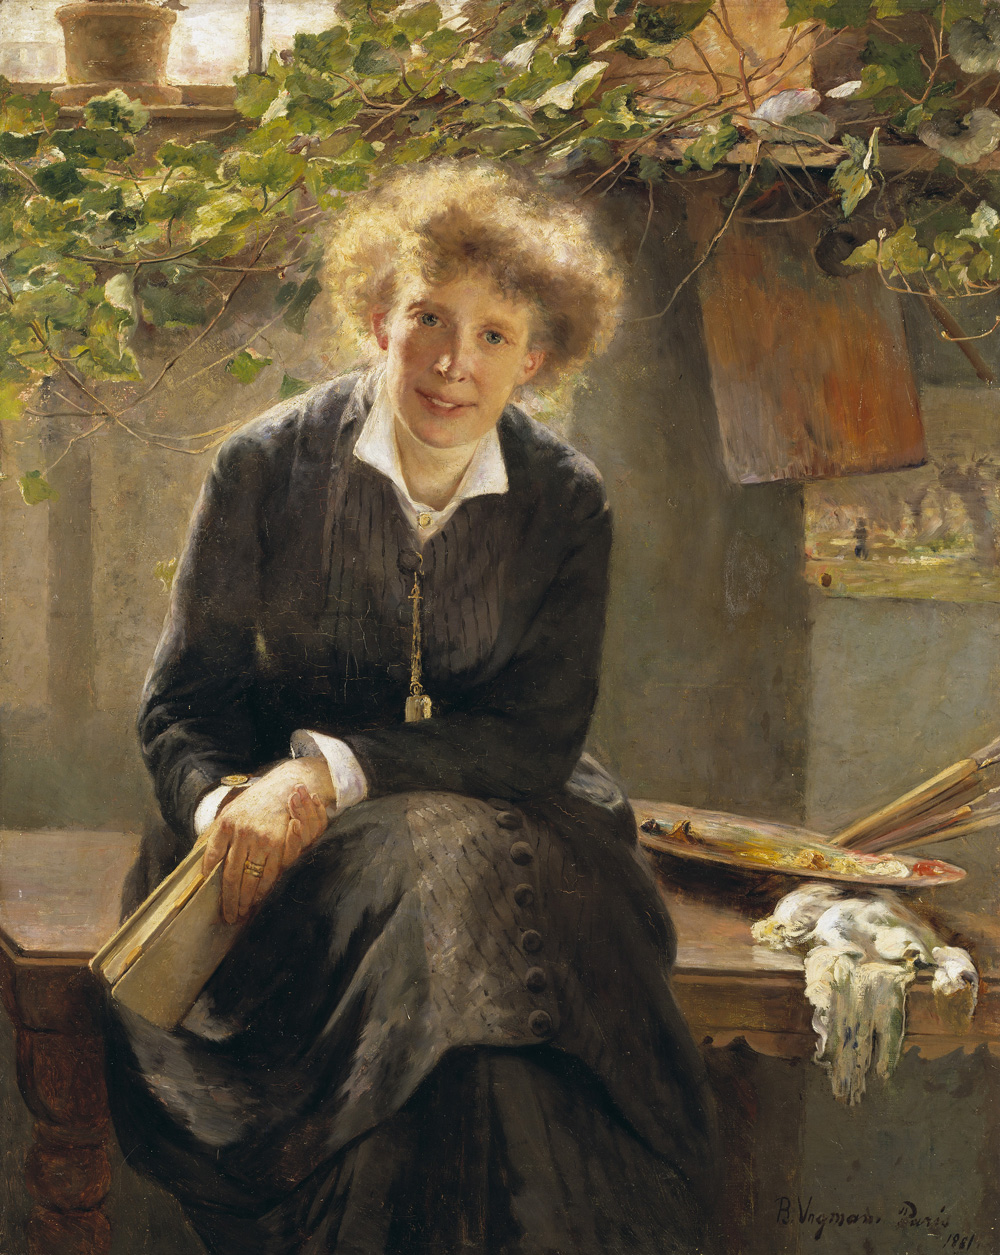 The_Artist_Jeanna_Bauck_1881_by_Bertha_Wegmann._Nationalmuseum_Stockholm_Sweden.jpg